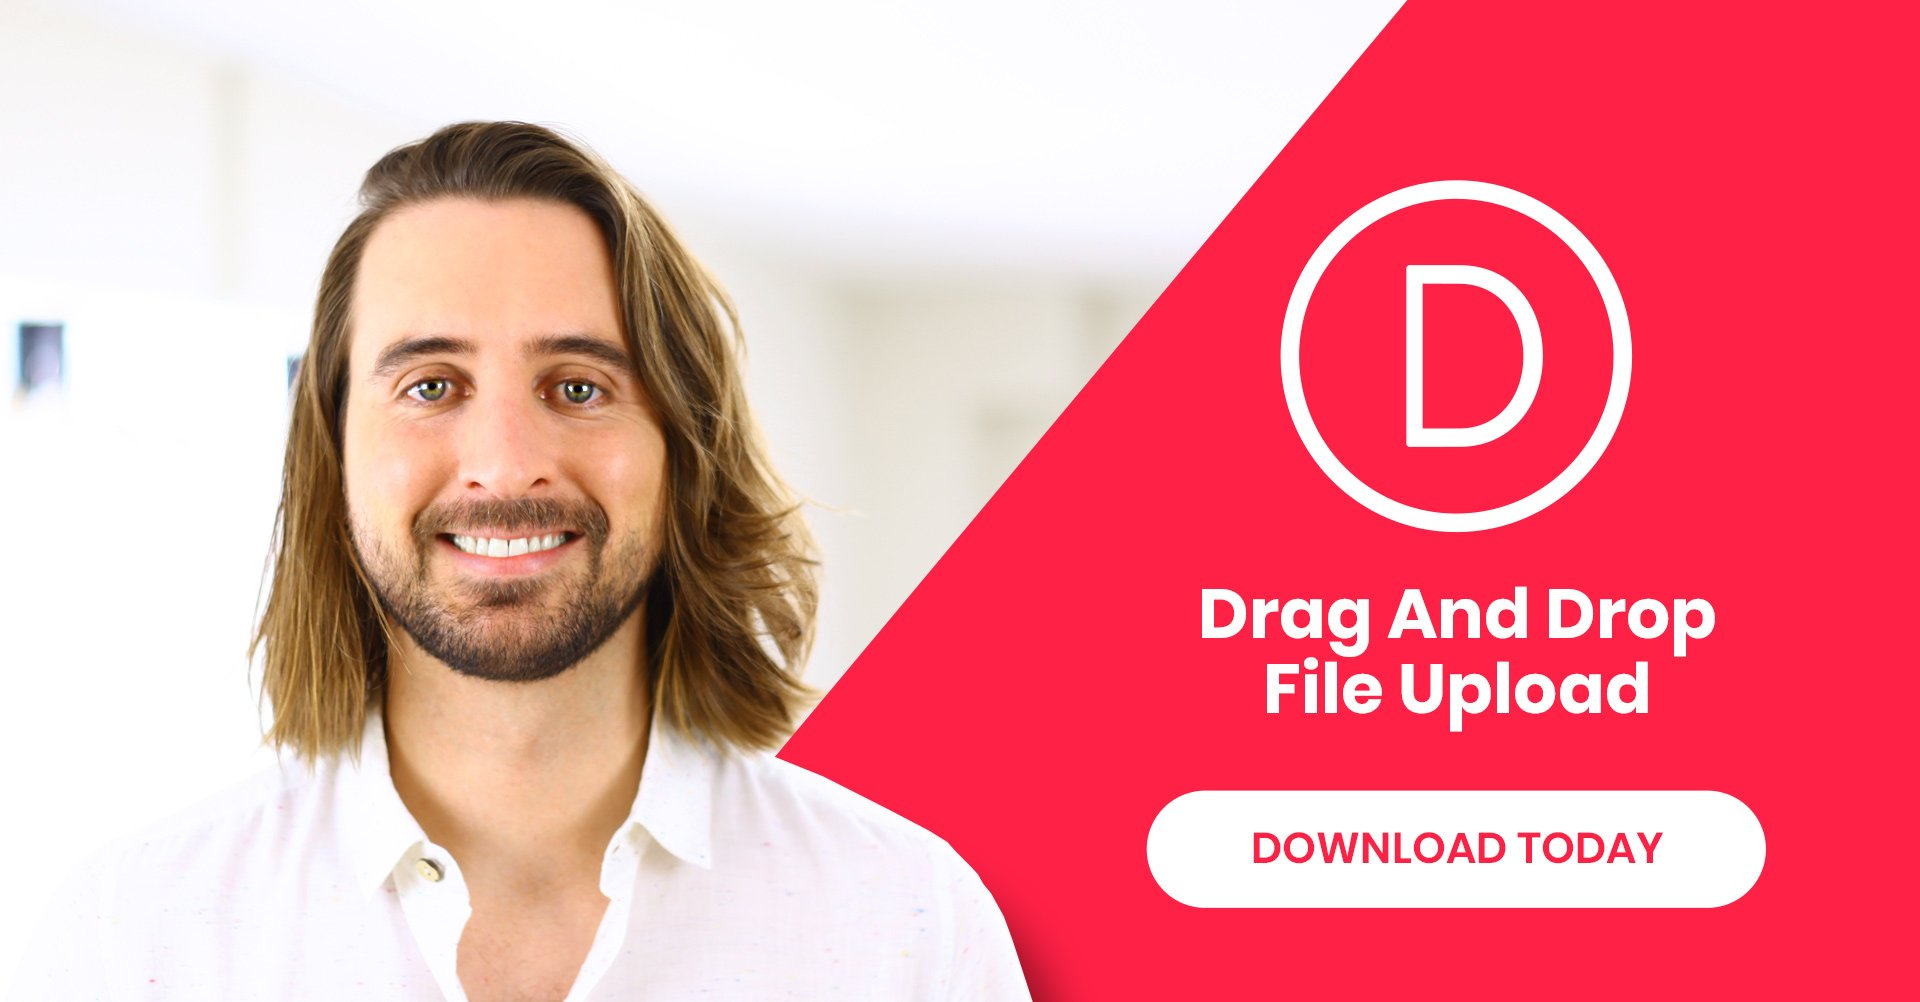 Divi Feature Update! Introducing Drag & Drop File Upload For The Divi Builder